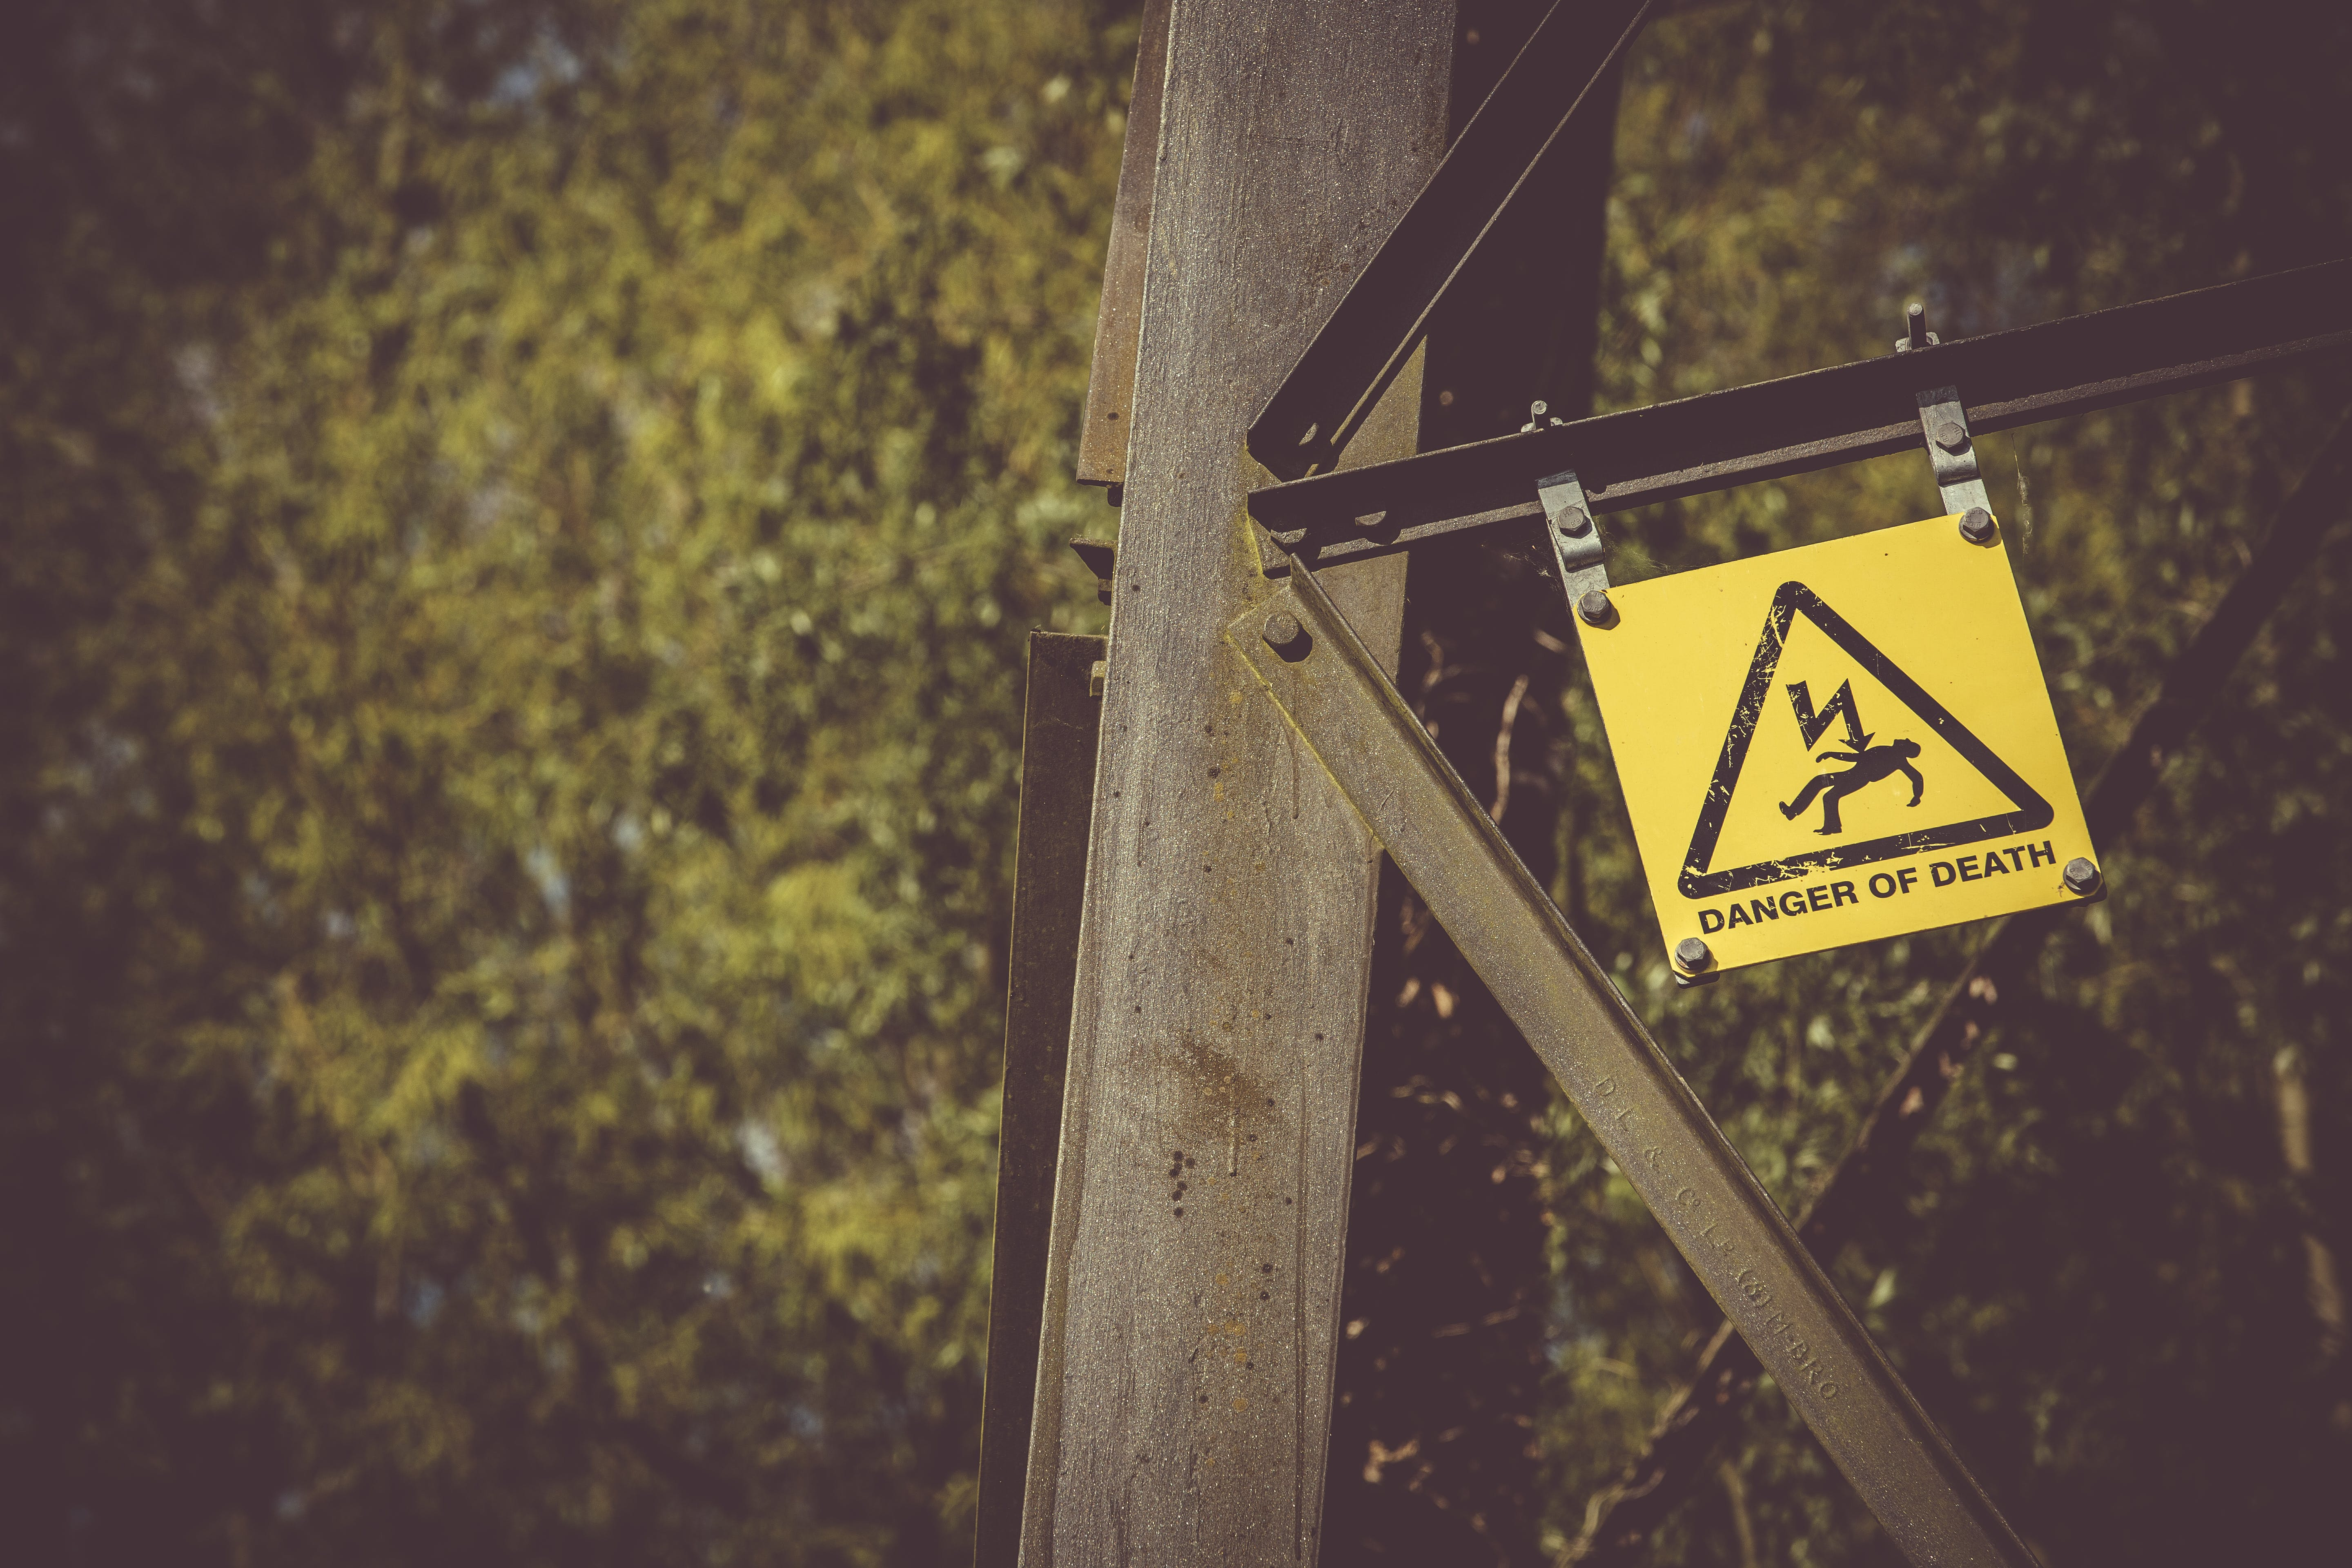 Free stock photo of danger, death, nature, warning sign